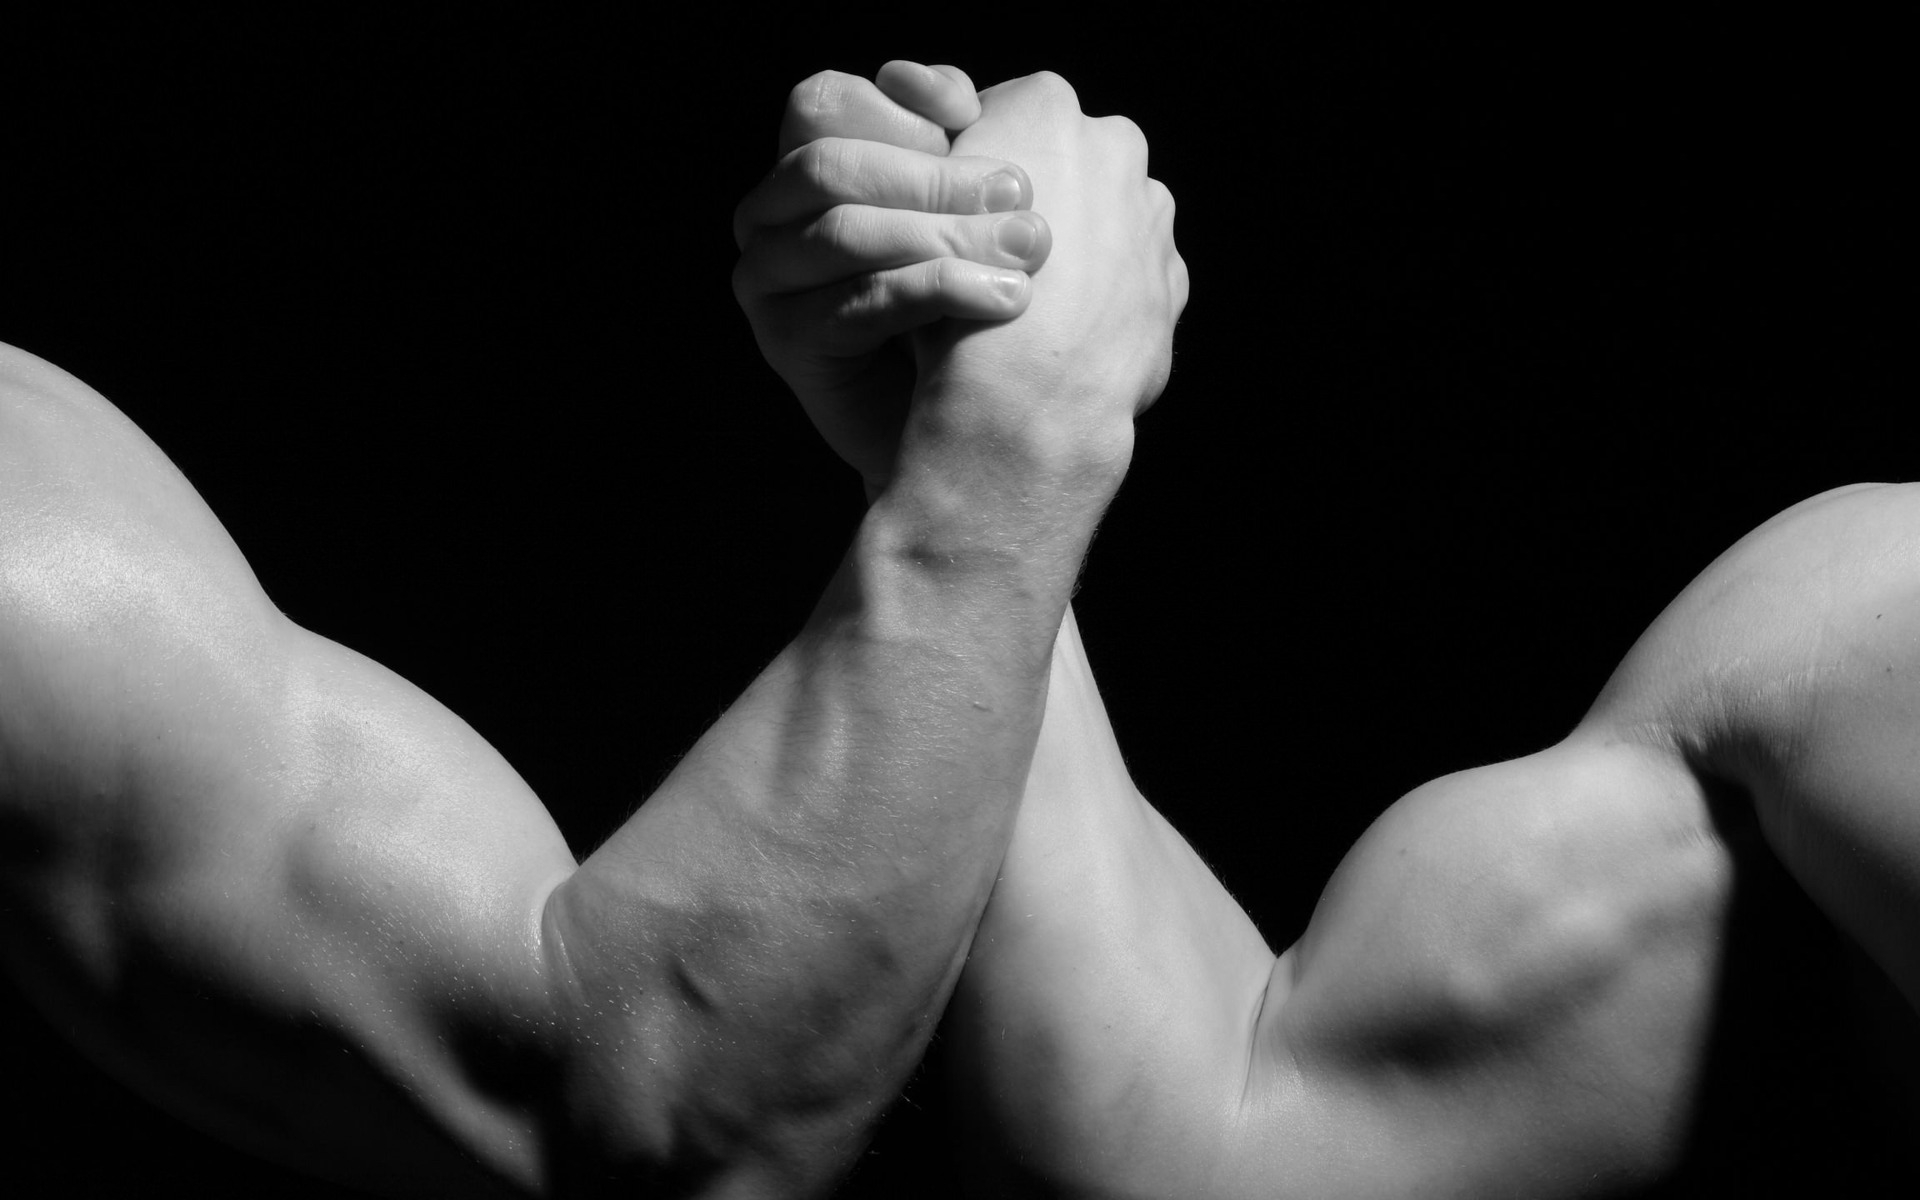 Arm Wrestle for 1920 x 1200 widescreen resolution